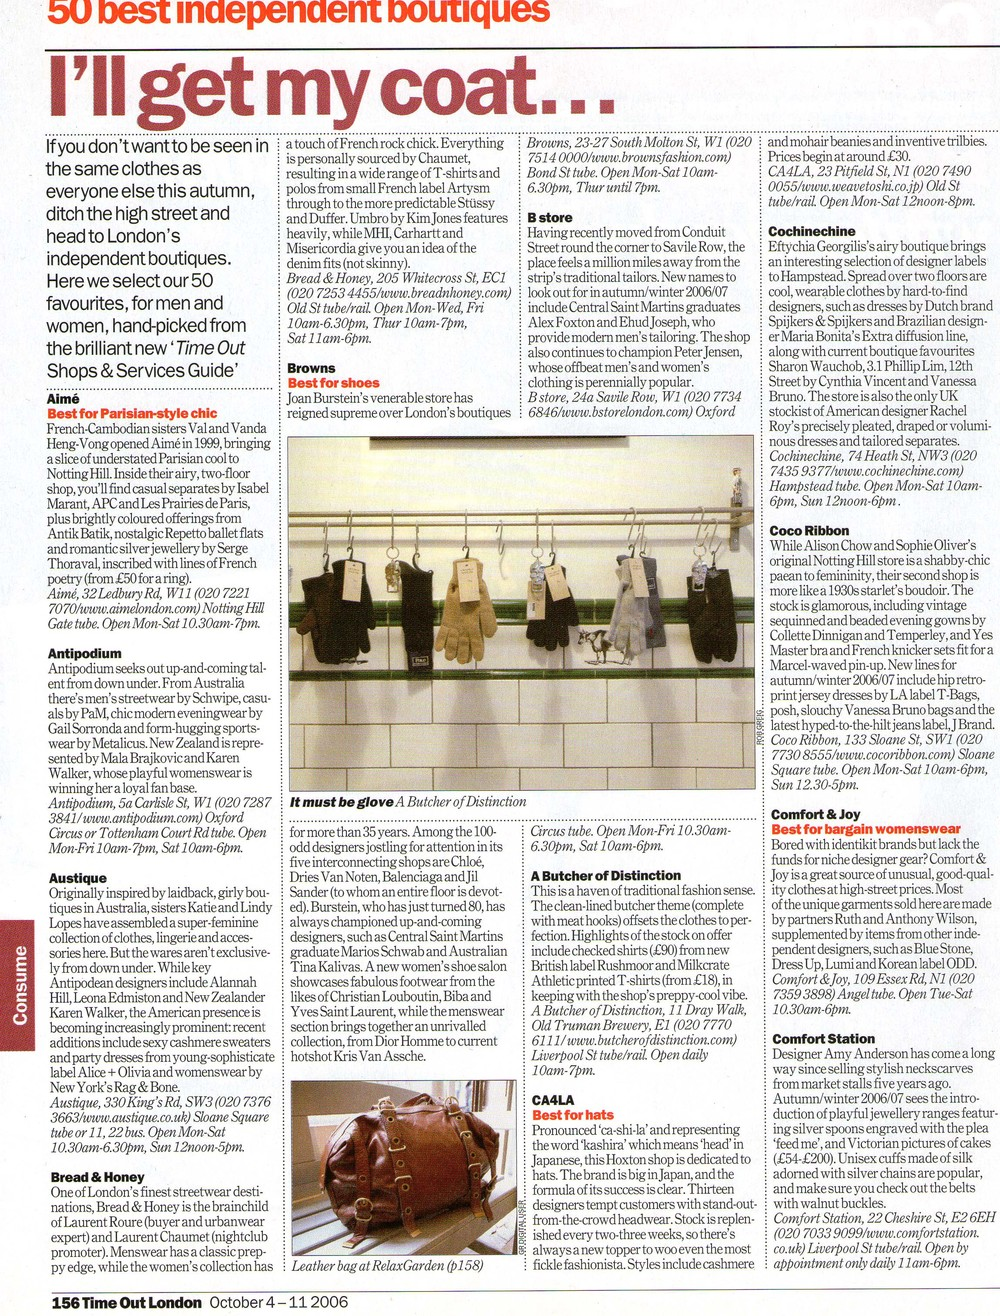 Time out London 4-11.10.06 artical 1of2.jpg